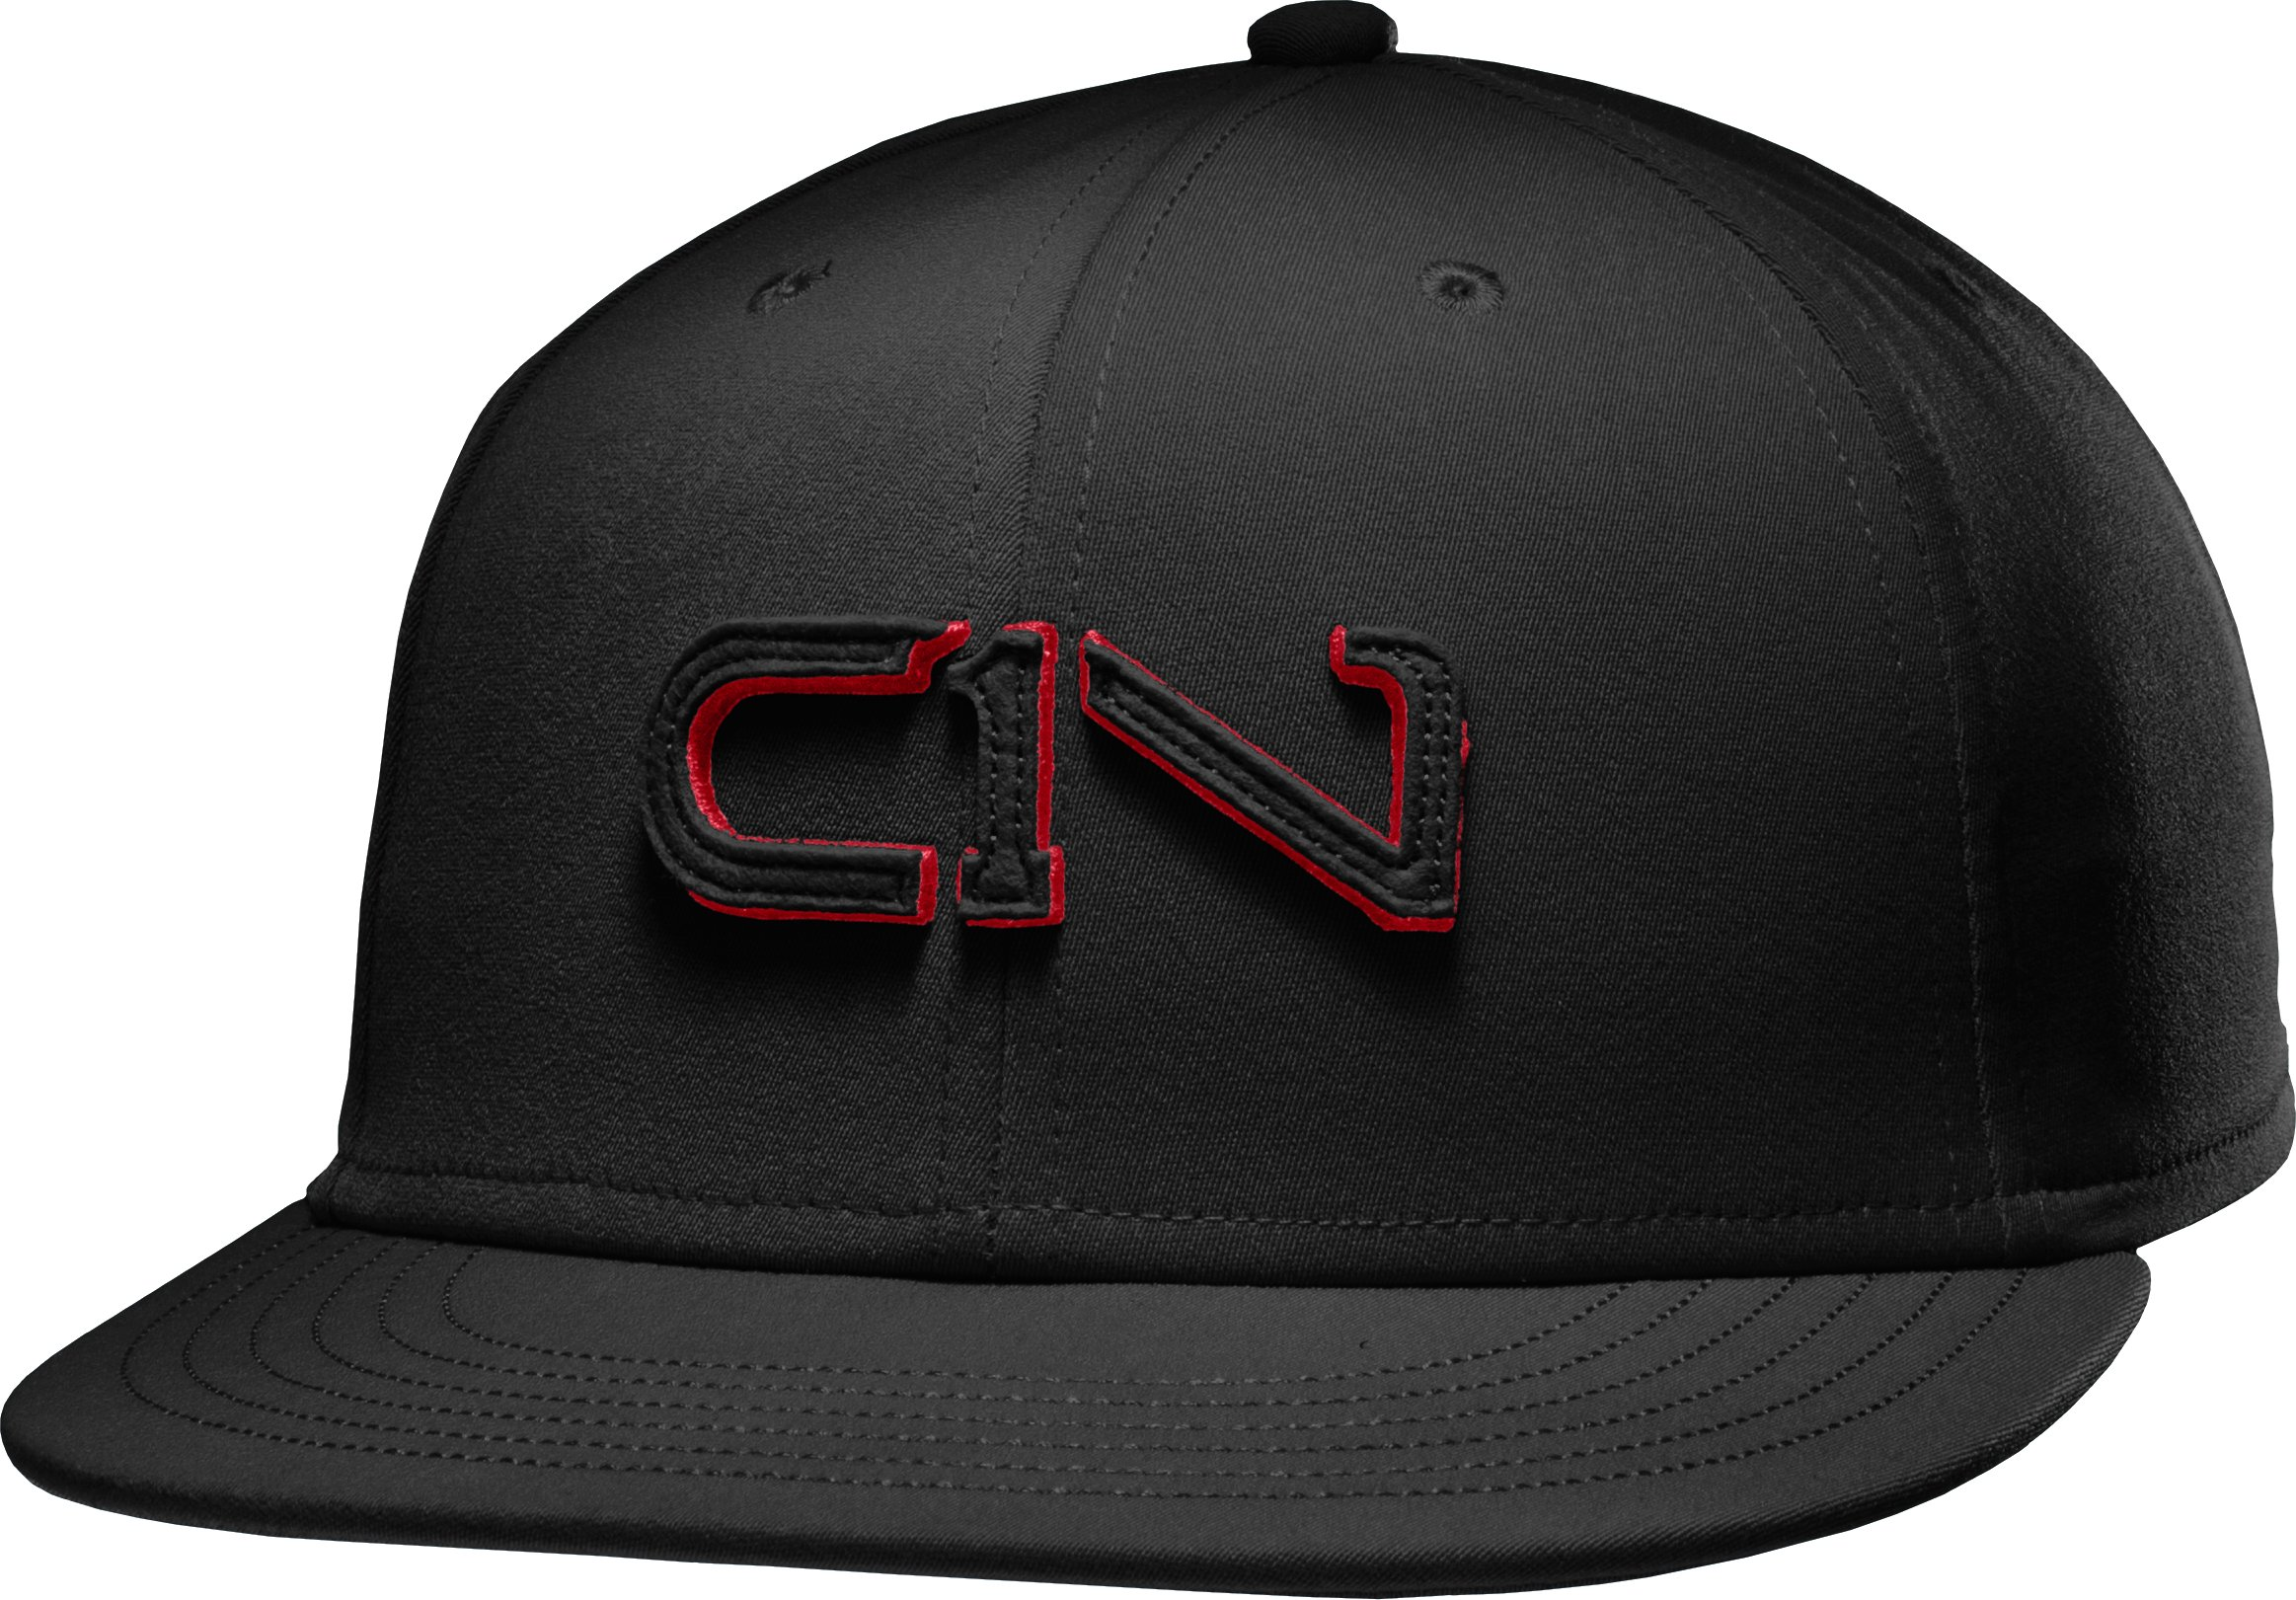 Men's C1N Snapback Cap, Black